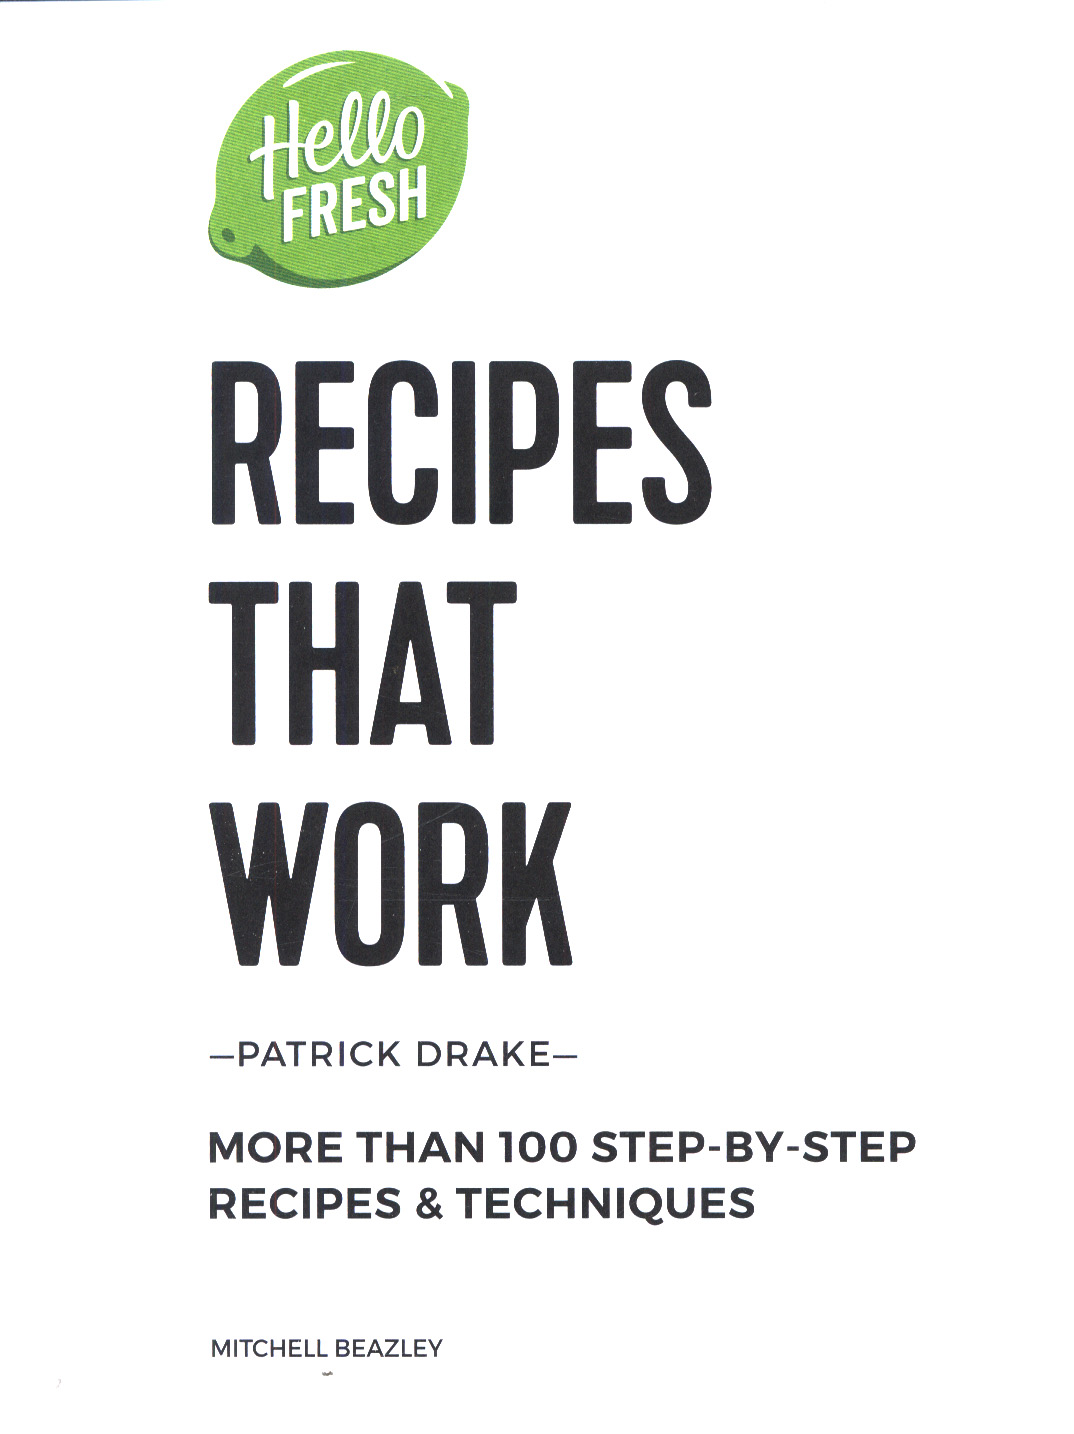 hellofresh recipes that work more than 100 stepbystep recipes techniques